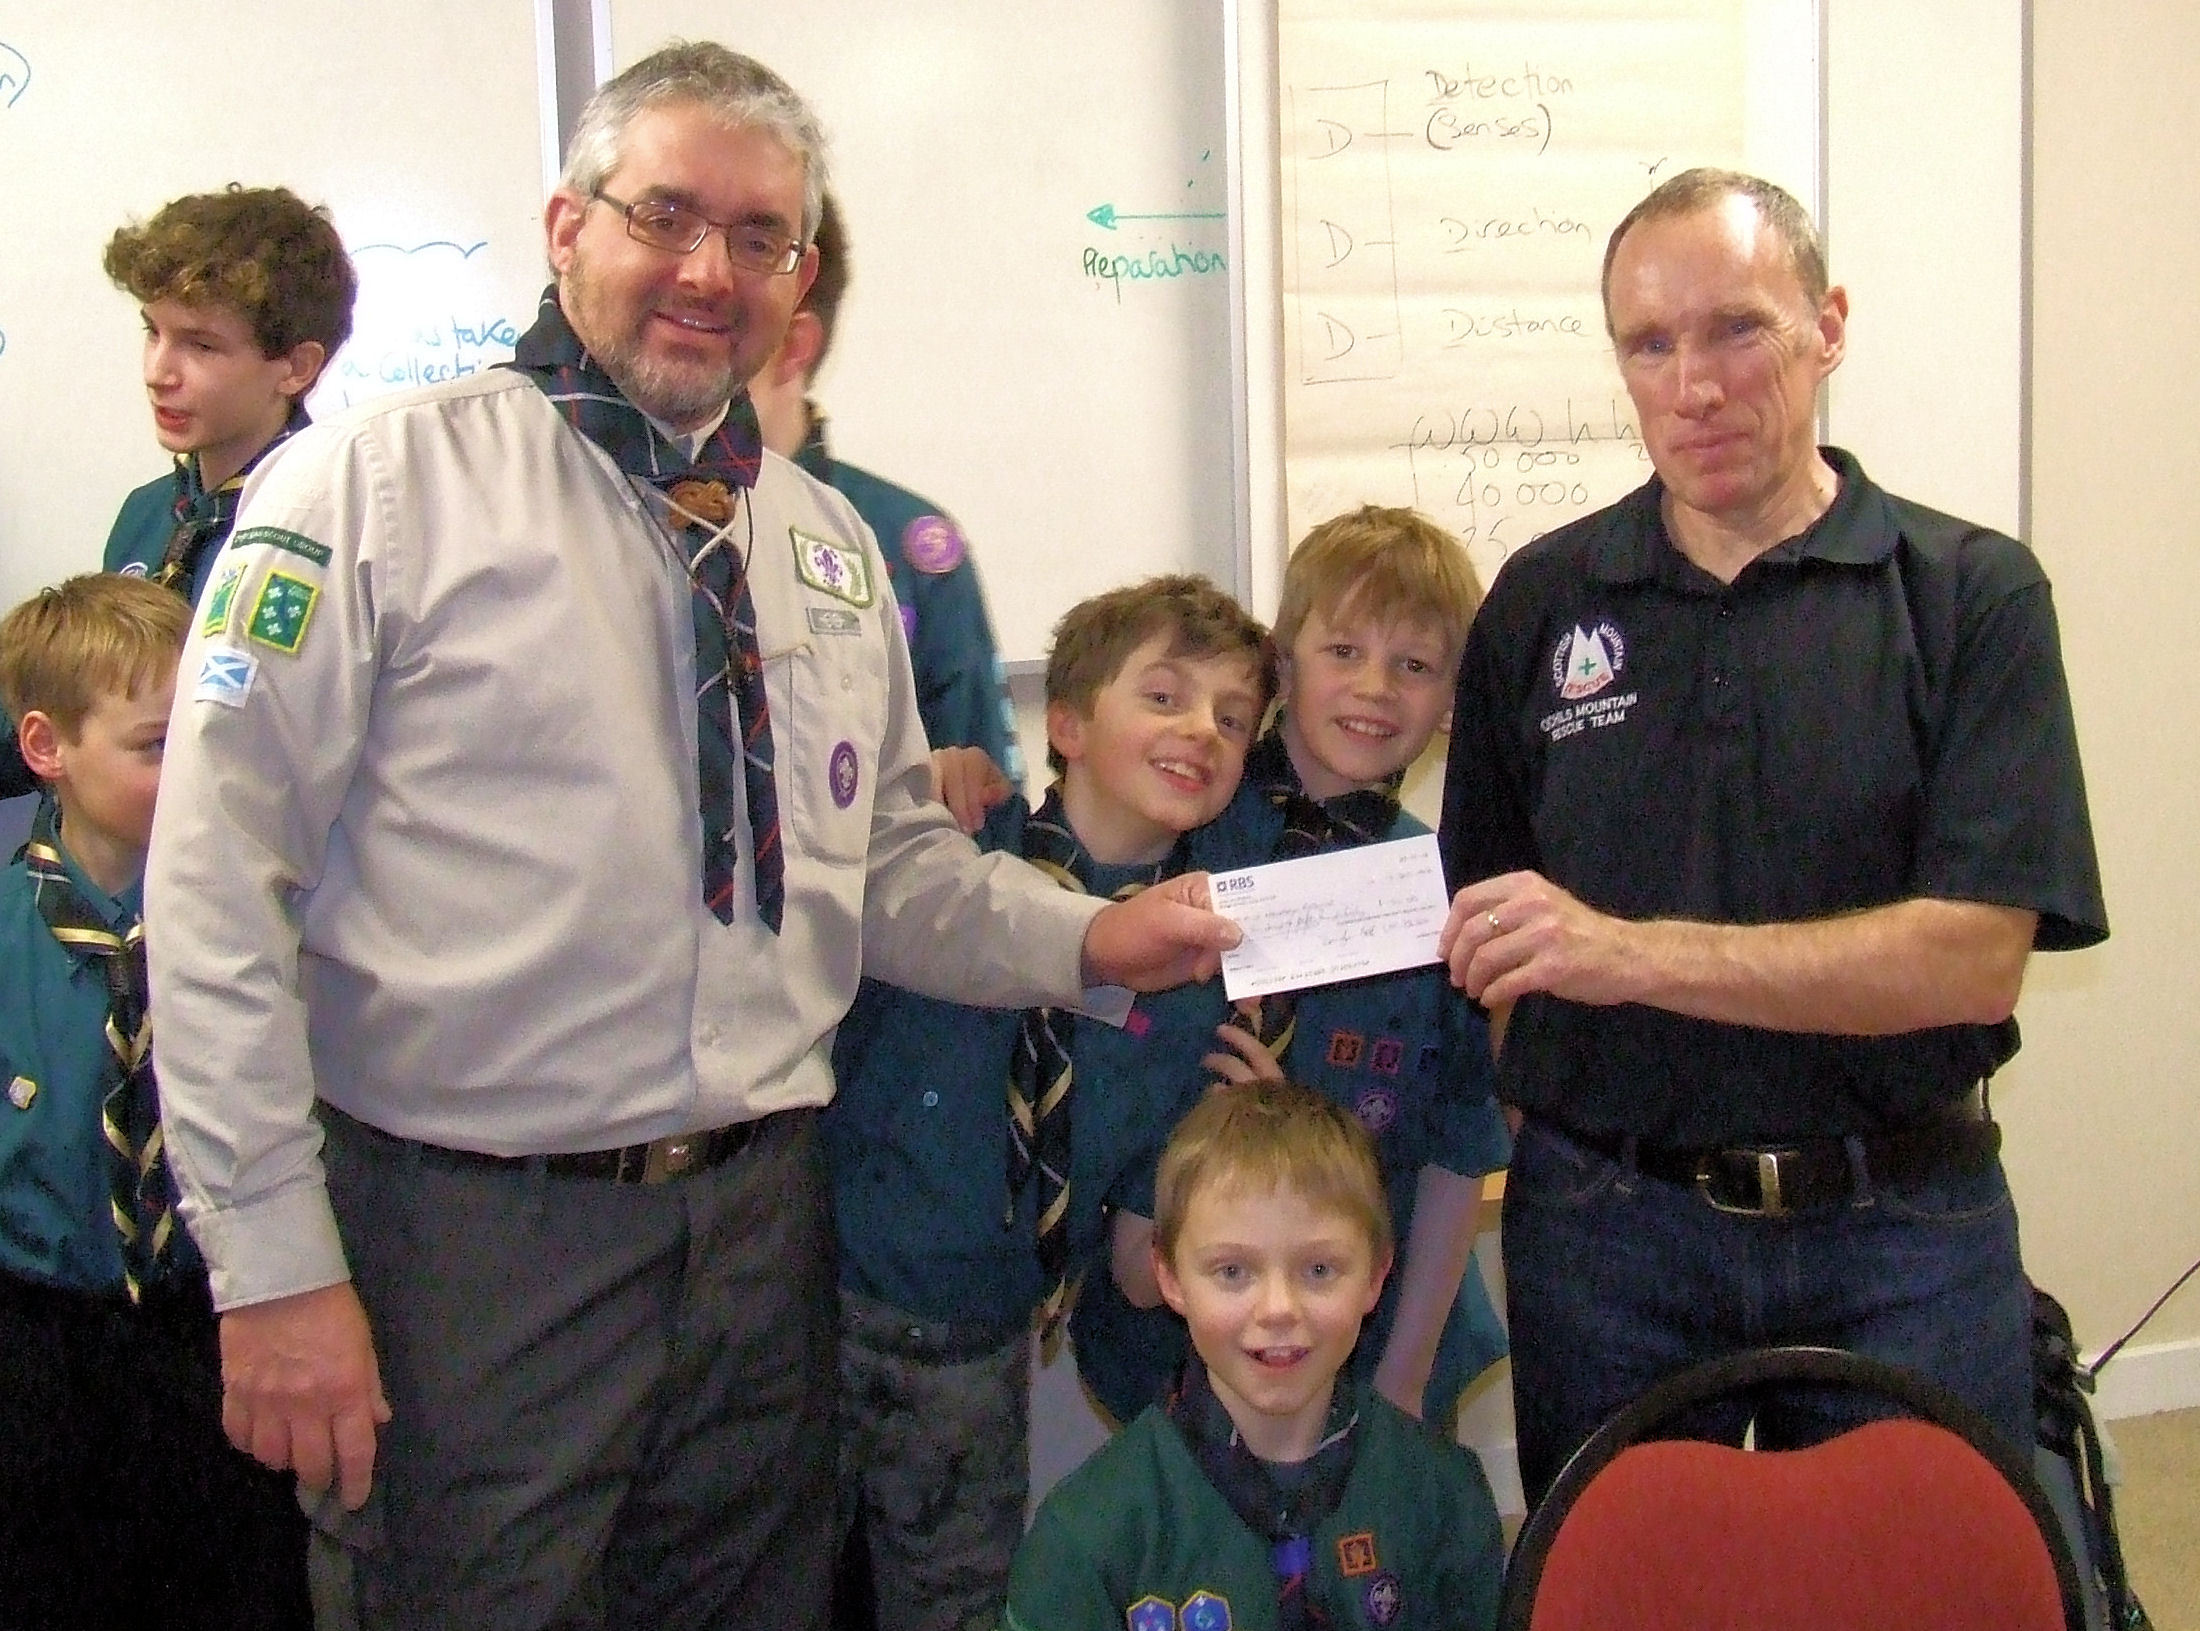 Dollar Scout Group leader Neil Schofield presents a cheque for £150 to Robert Davidson, leader of the Ochils Mountain Rescue Team